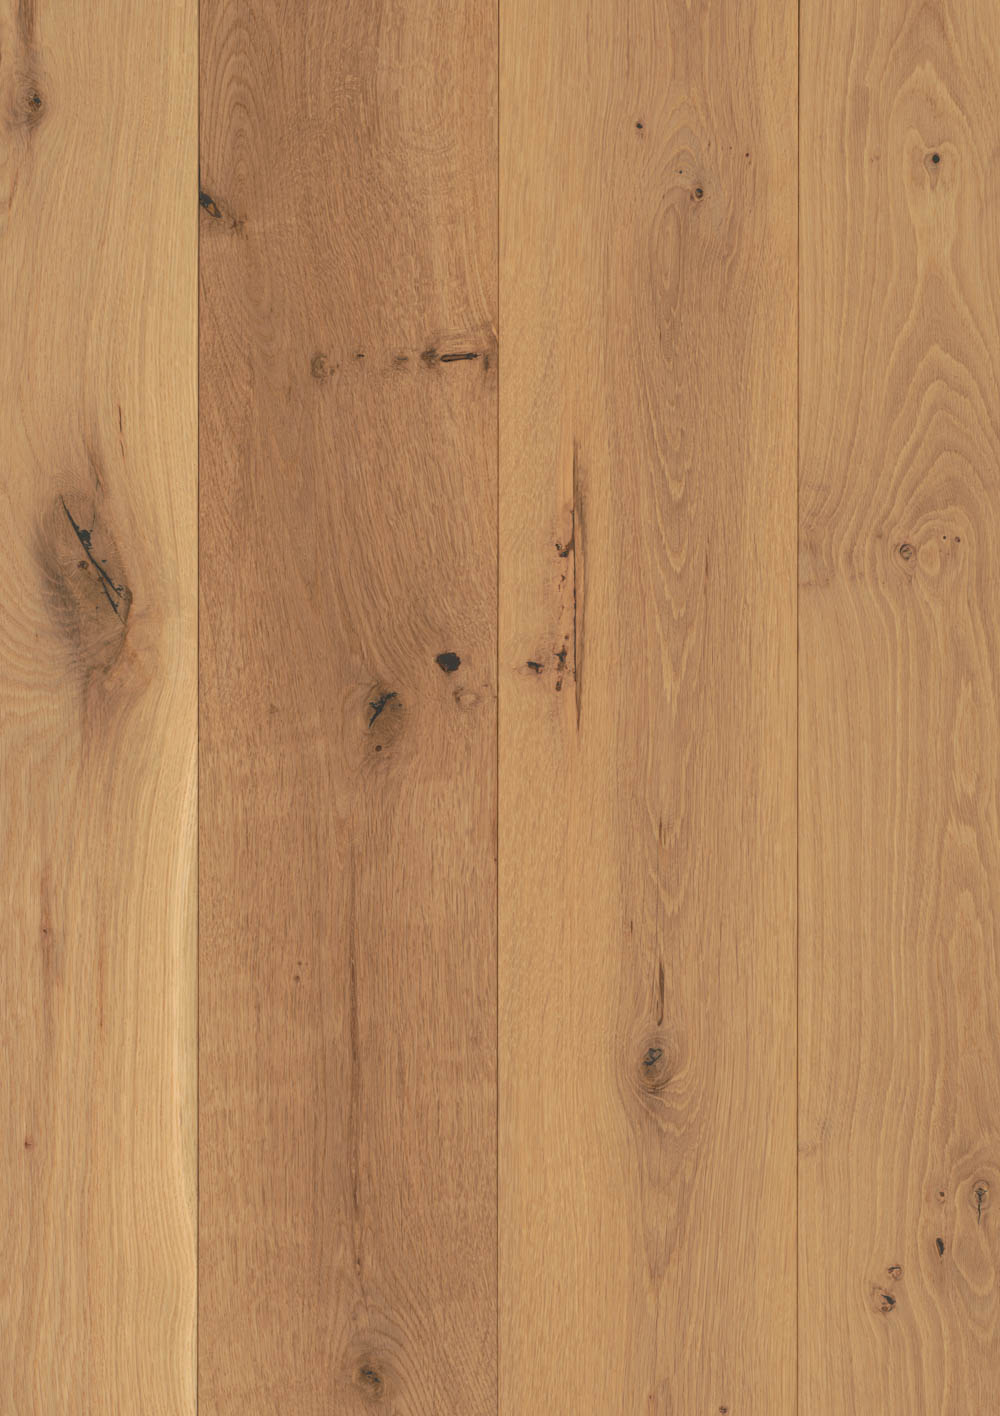 Hudson Company Center Cut White Oak planking in detail.